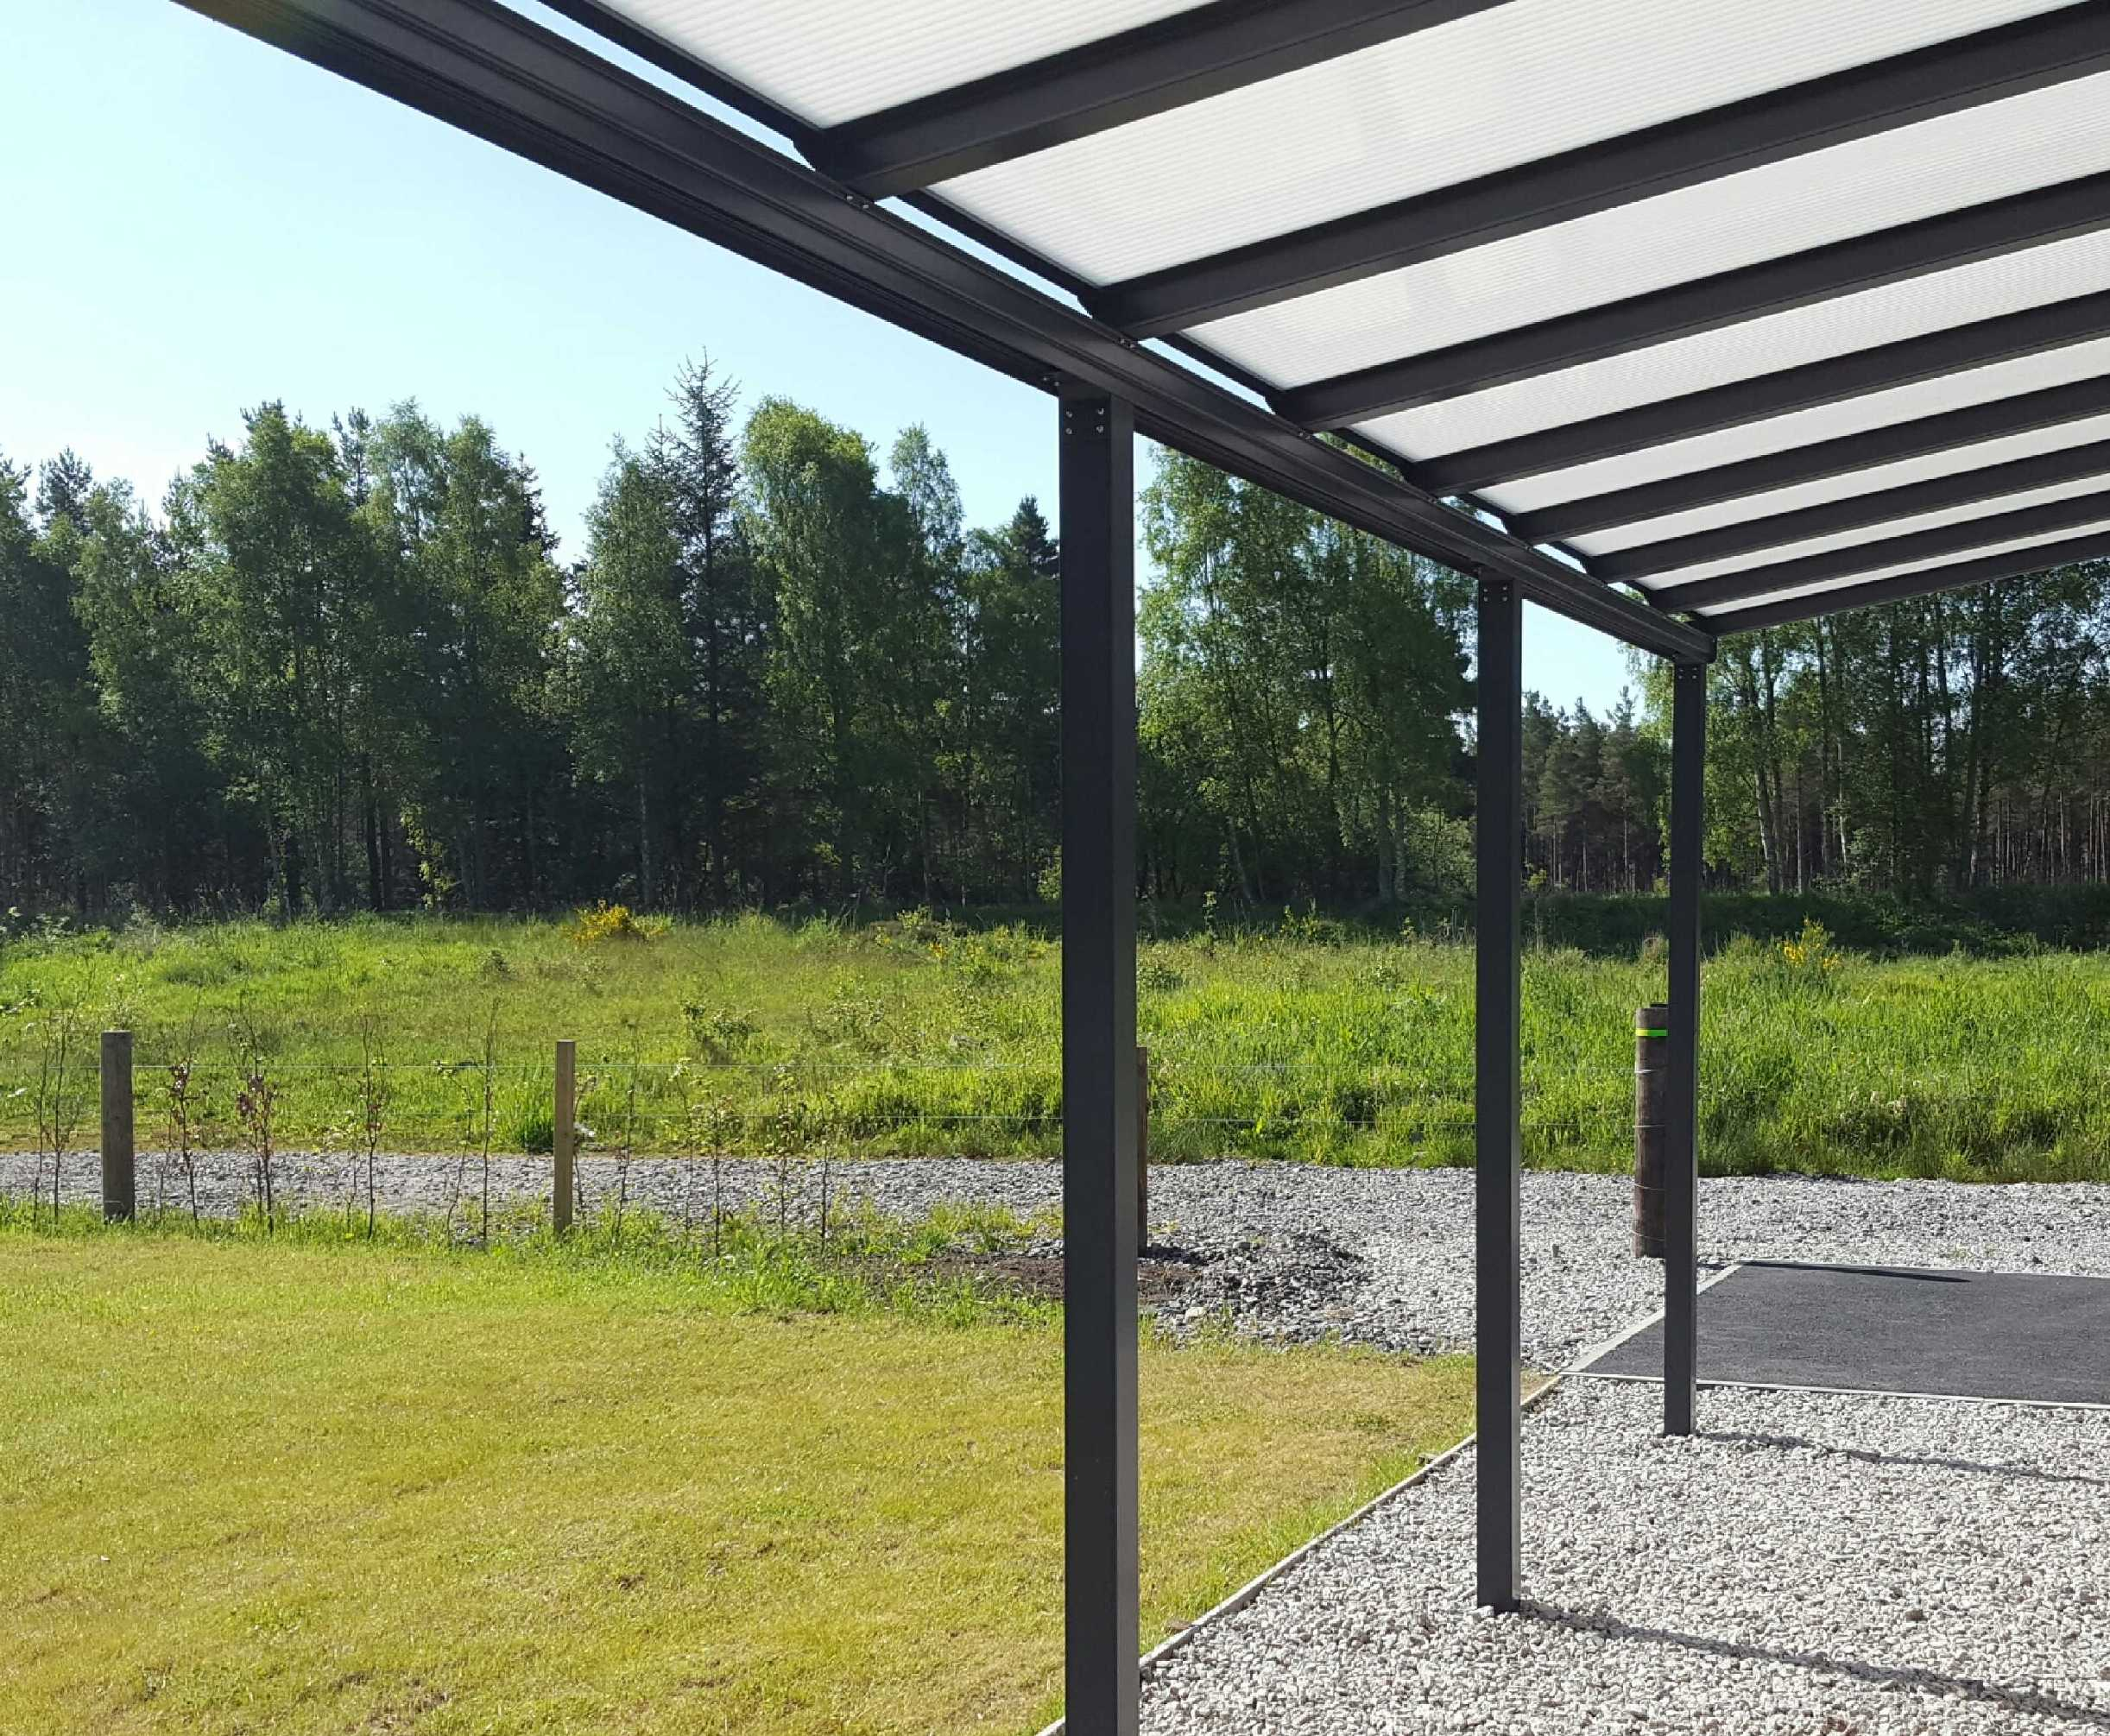 Omega Smart Lean-To Canopy, Anthracite Grey, UNGLAZED for 6mm Glazing - 6.3m (W) x 2.5m (P), (4) Supporting Posts